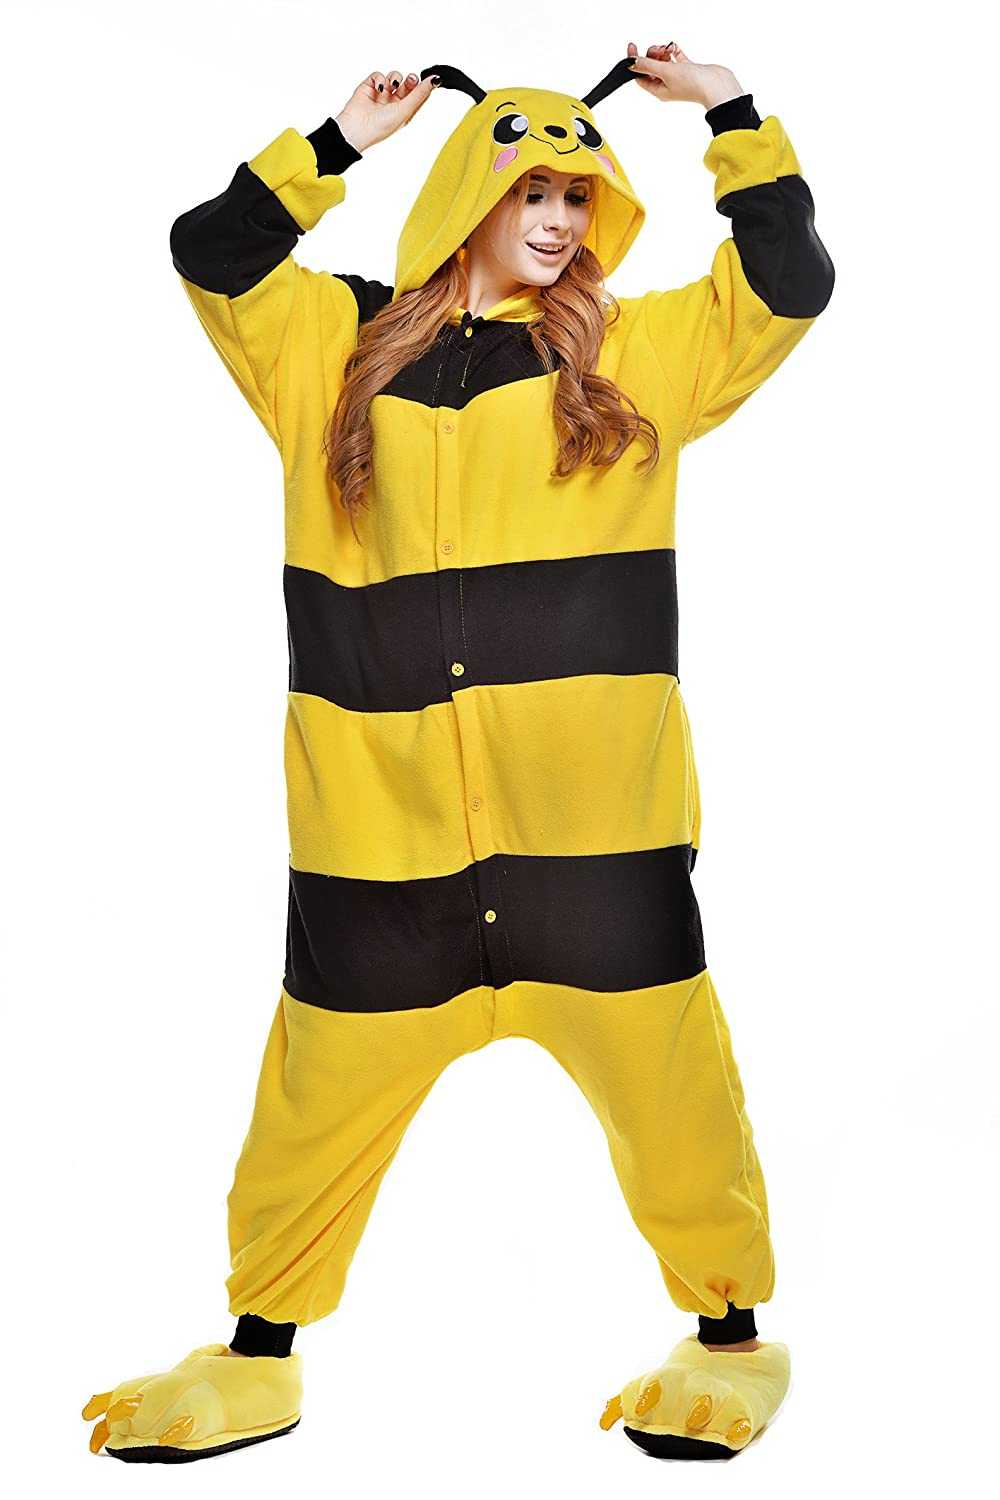 Amazon.com: Unisex Aduit Pajamas- Plush One Piece Cosplay Animal Costume (M, honeybee): Clothing